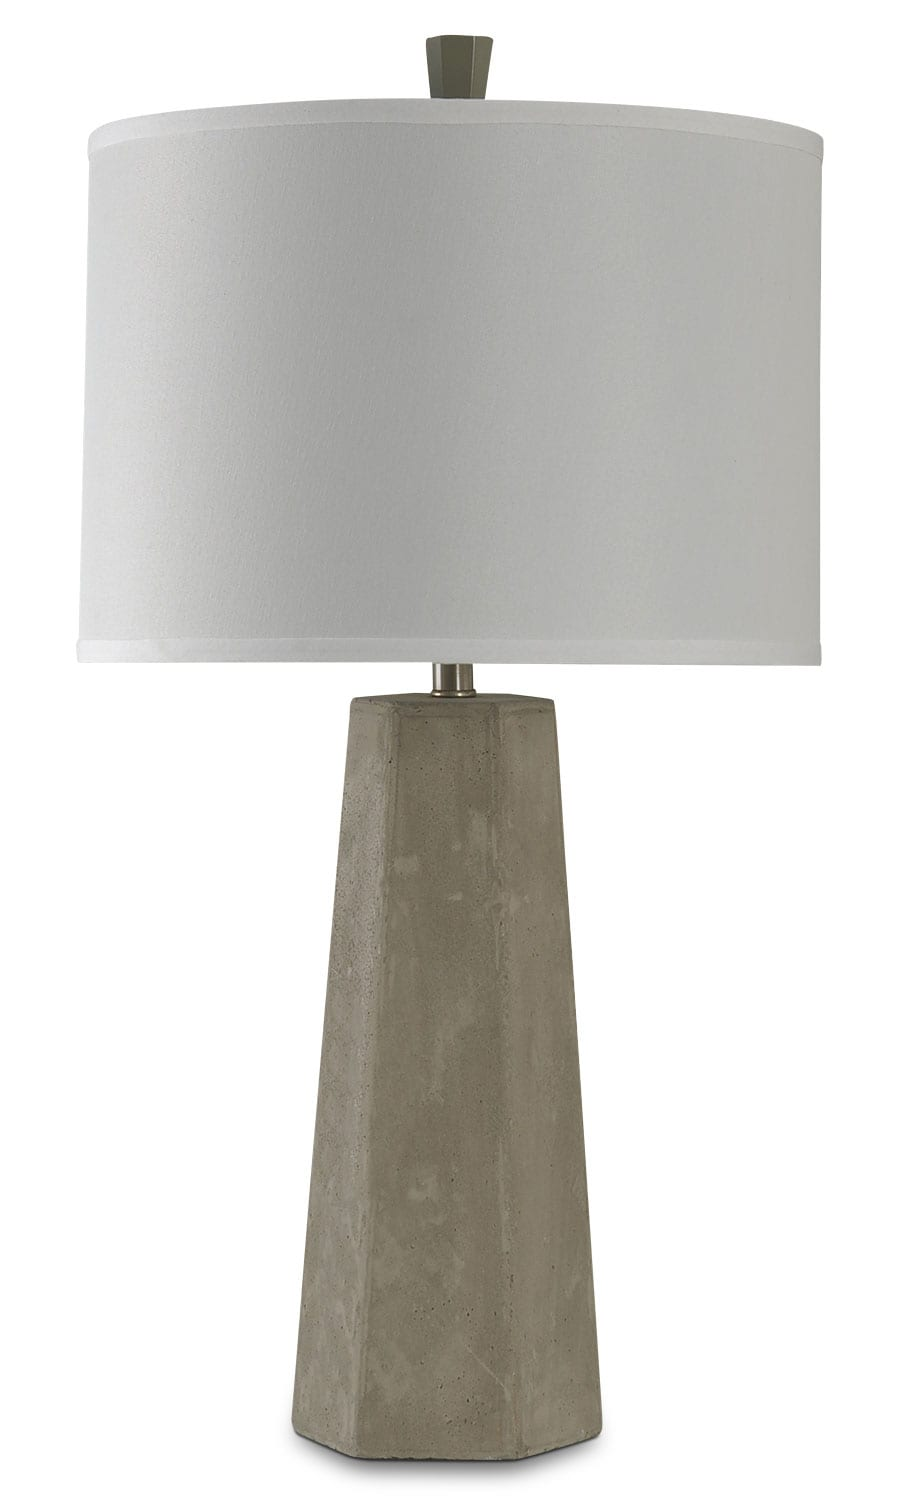 Home Accessories - Cement Table Lamp